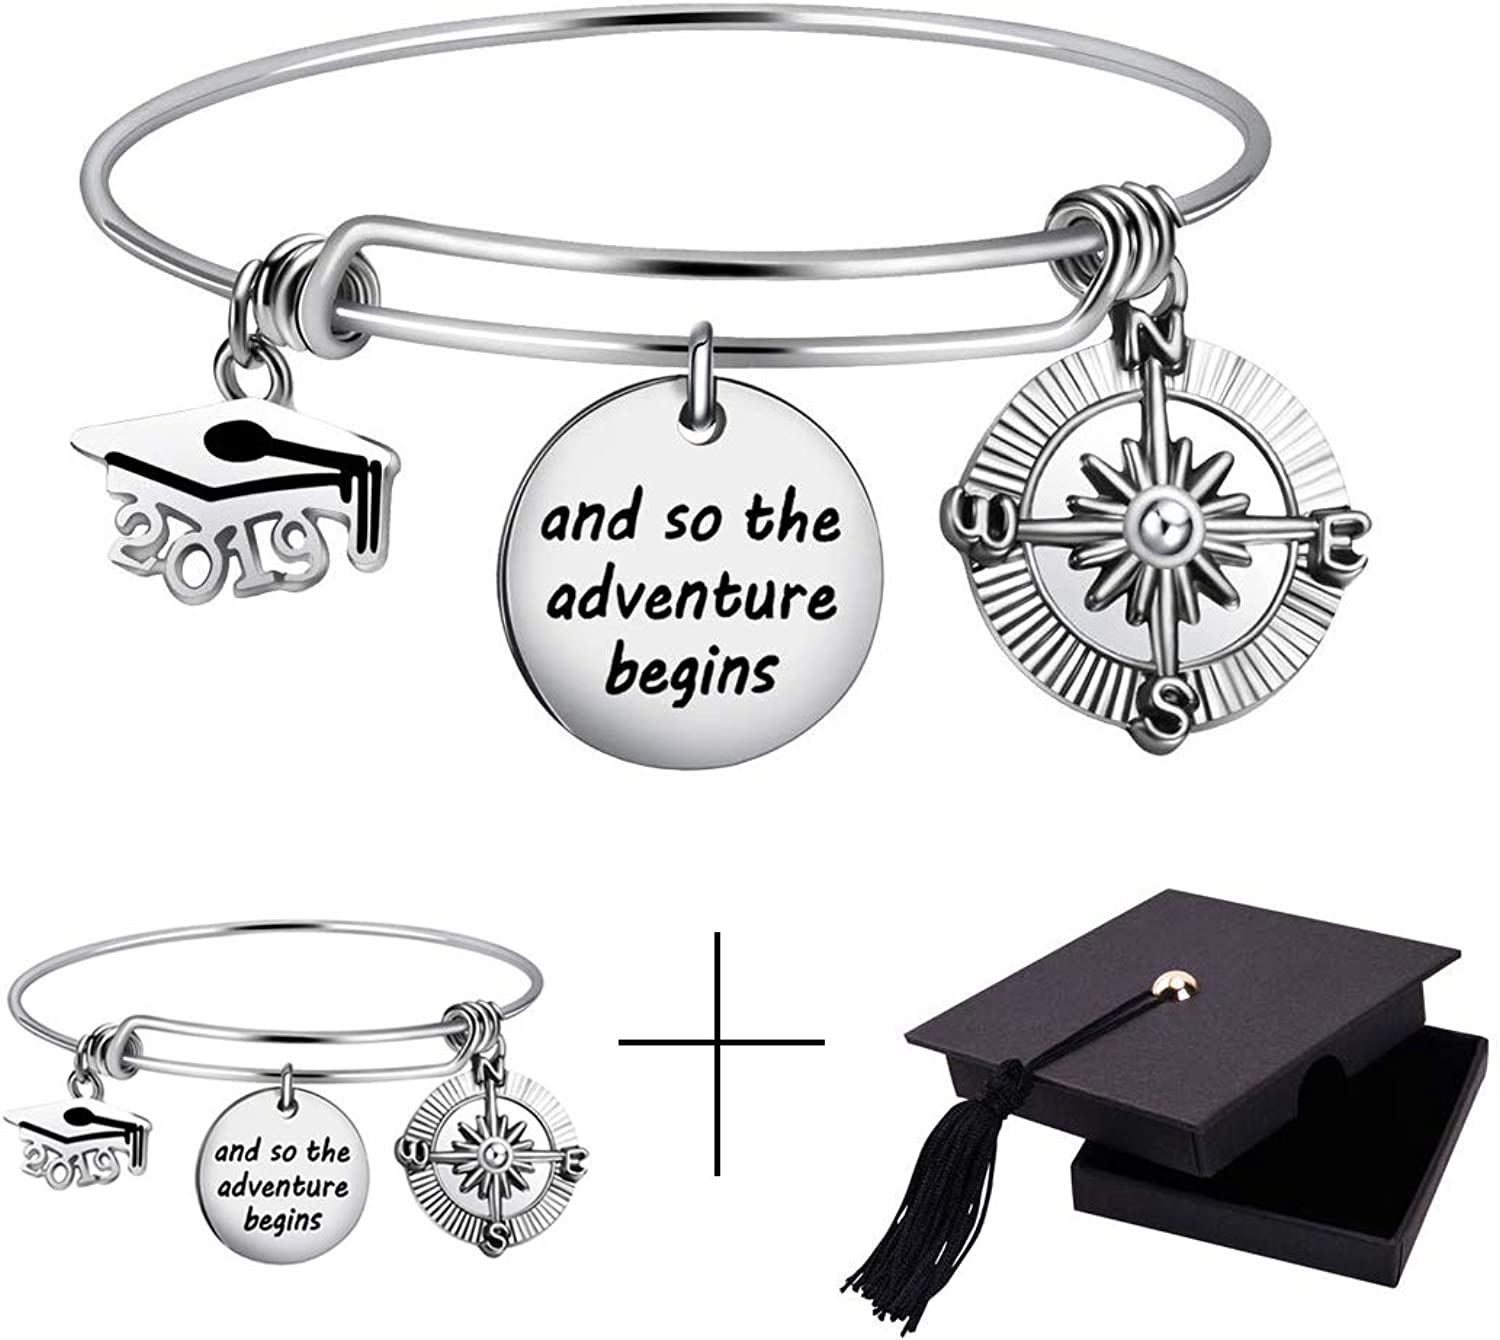 2021 Graduation Max 85% OFF Gift Cap Compass All items in the store Bracelet Bangle Expa